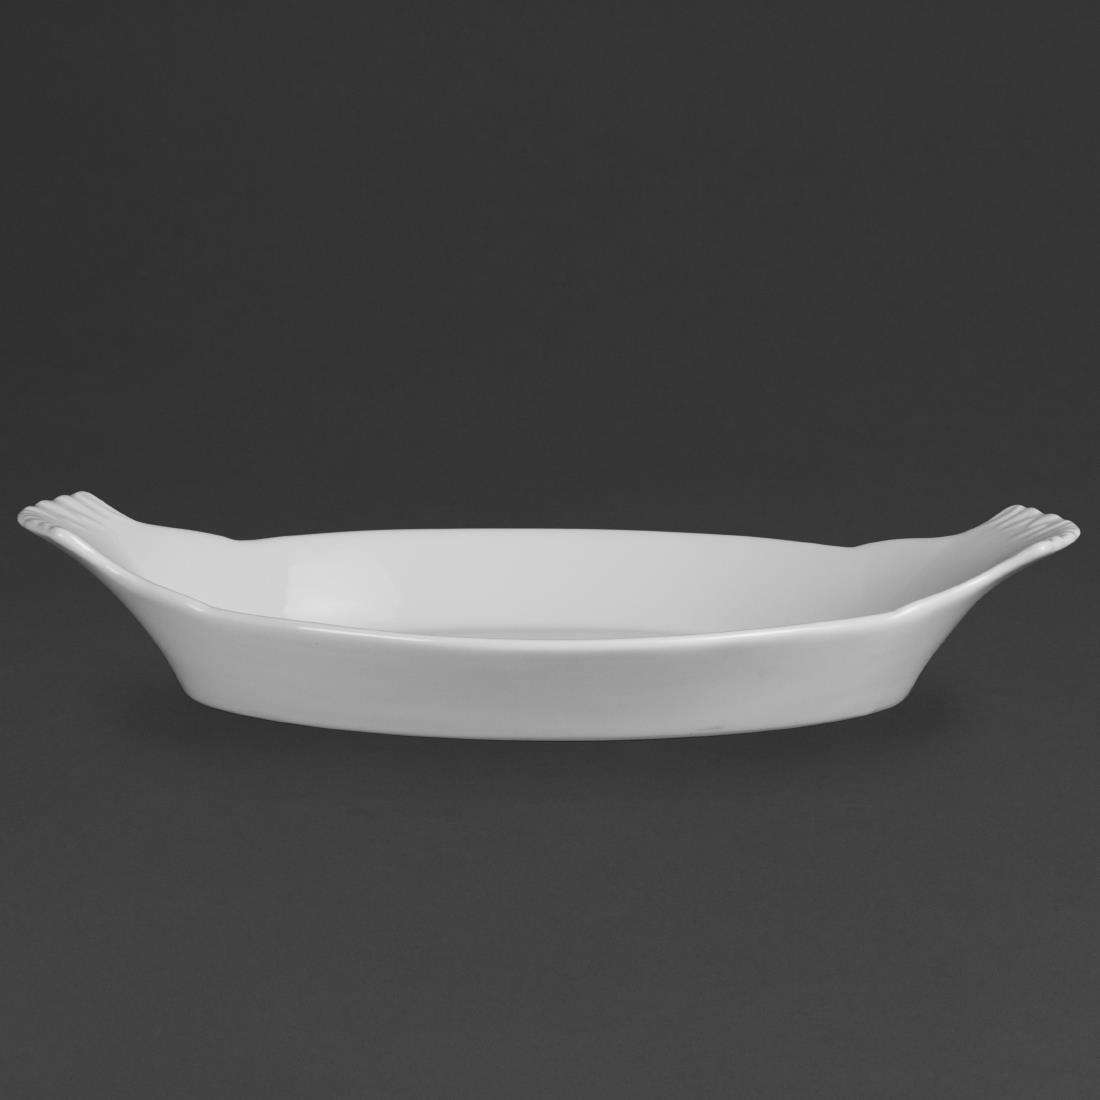 W415 - Olympia Whiteware Oval Eared Dish